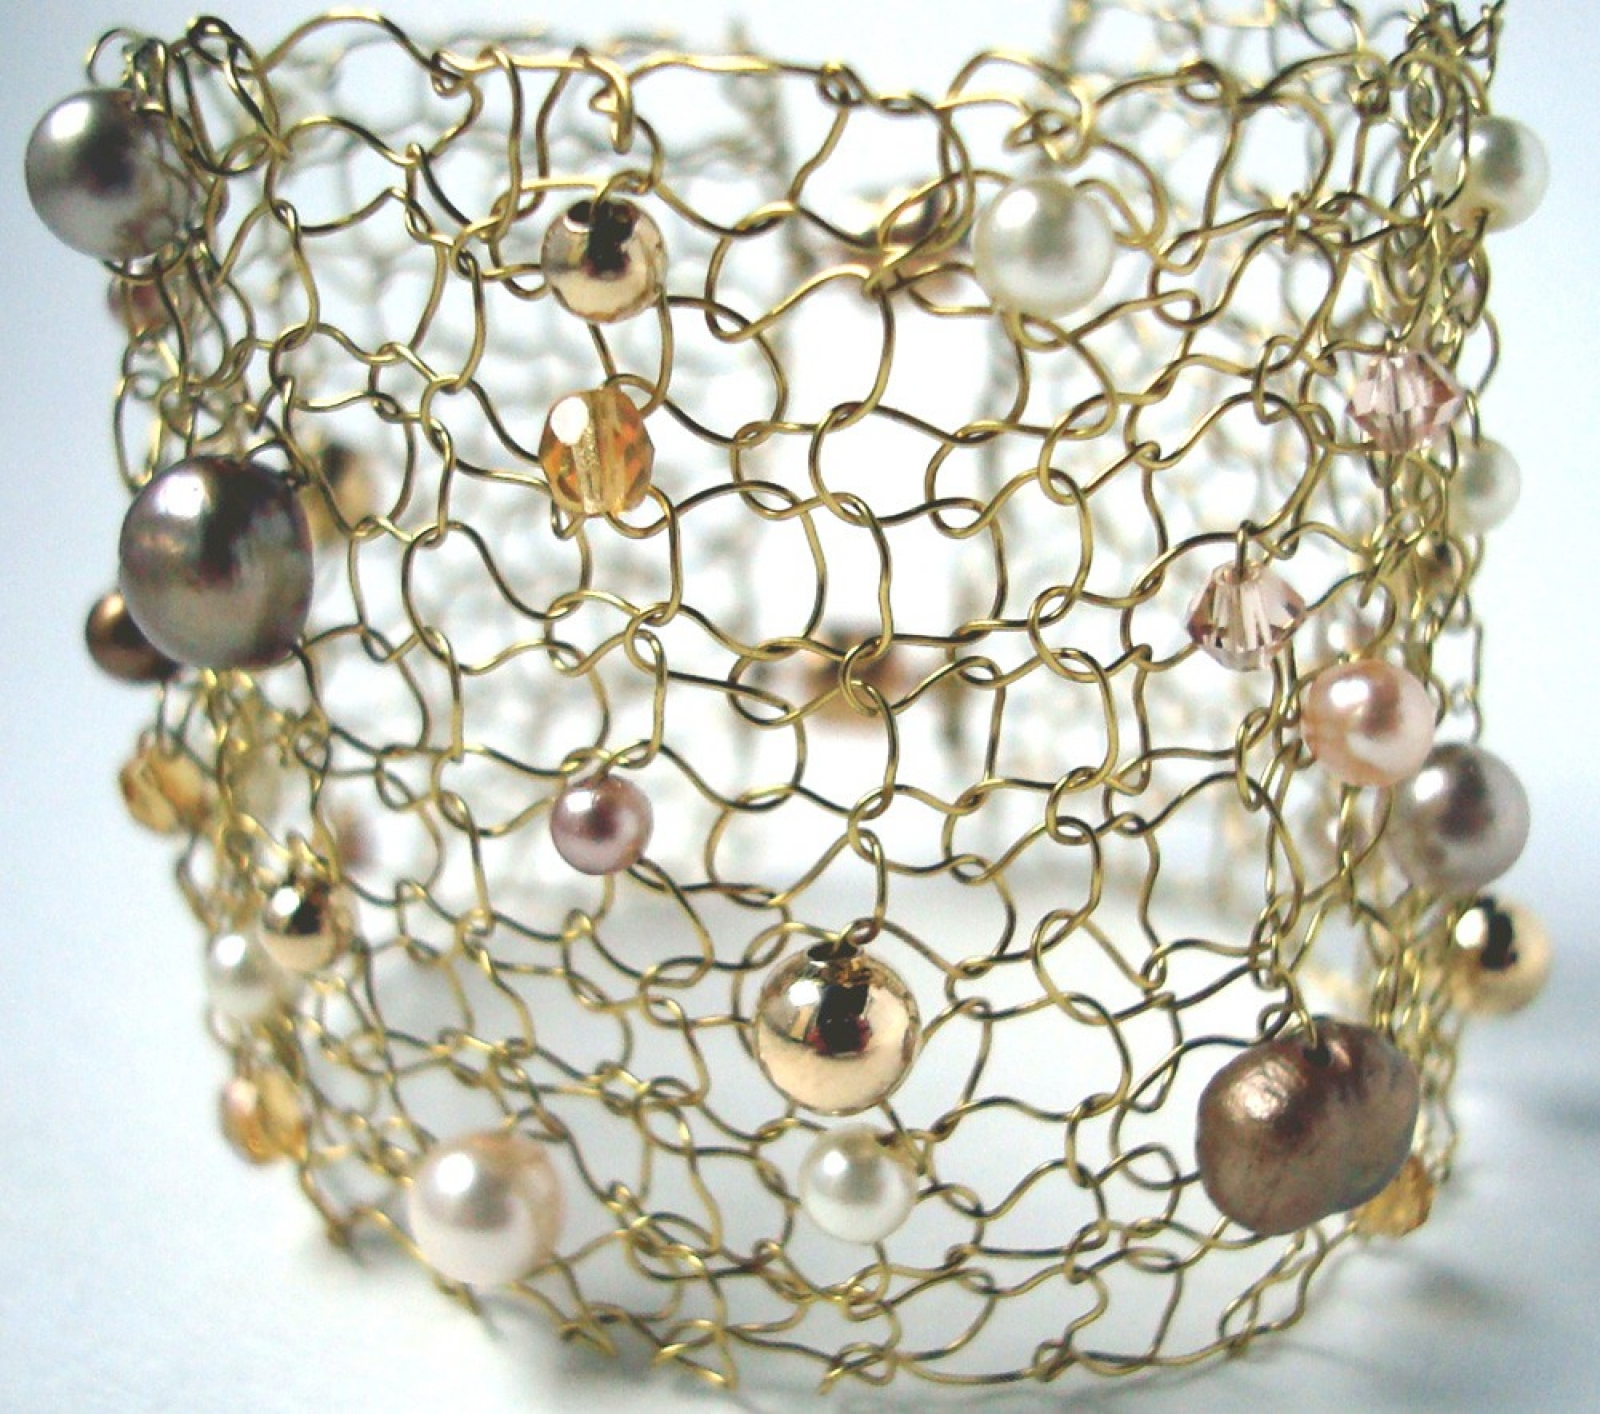 Wide Gold Cuff Bracelet Wire Knit Jewelry Pearl Bracelet